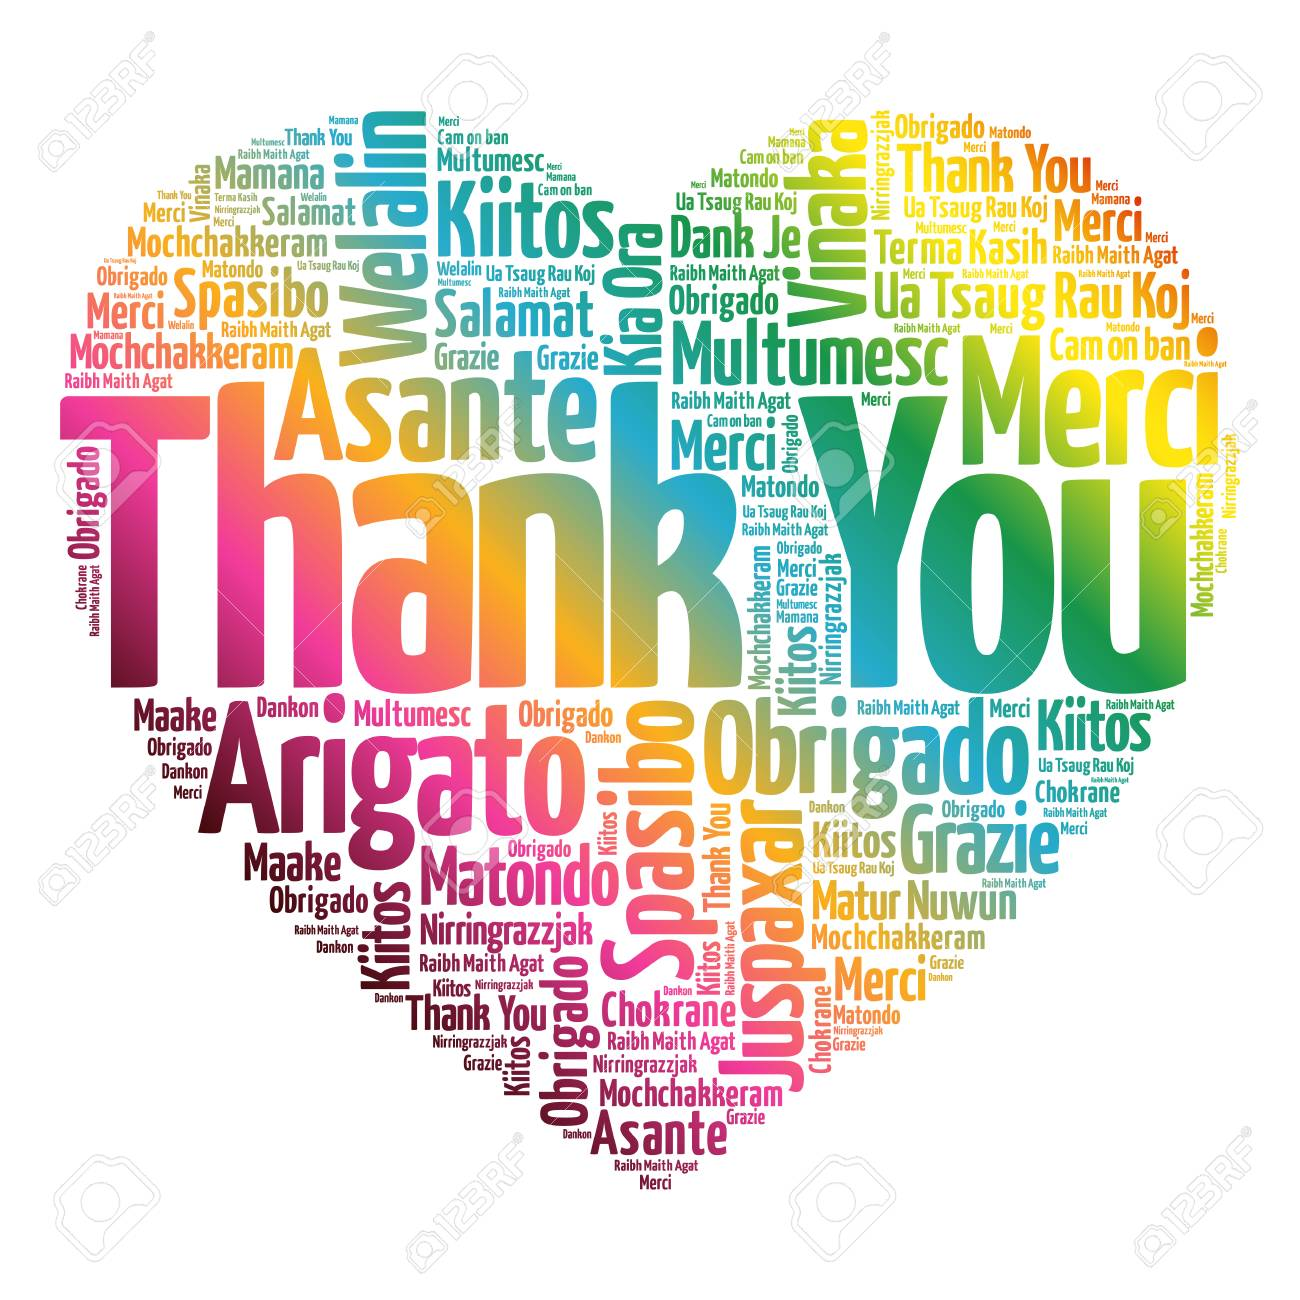 thank you love heart word cloud in different languages concept rh 123rf com Thank You Clip Art thank you in many languages clipart